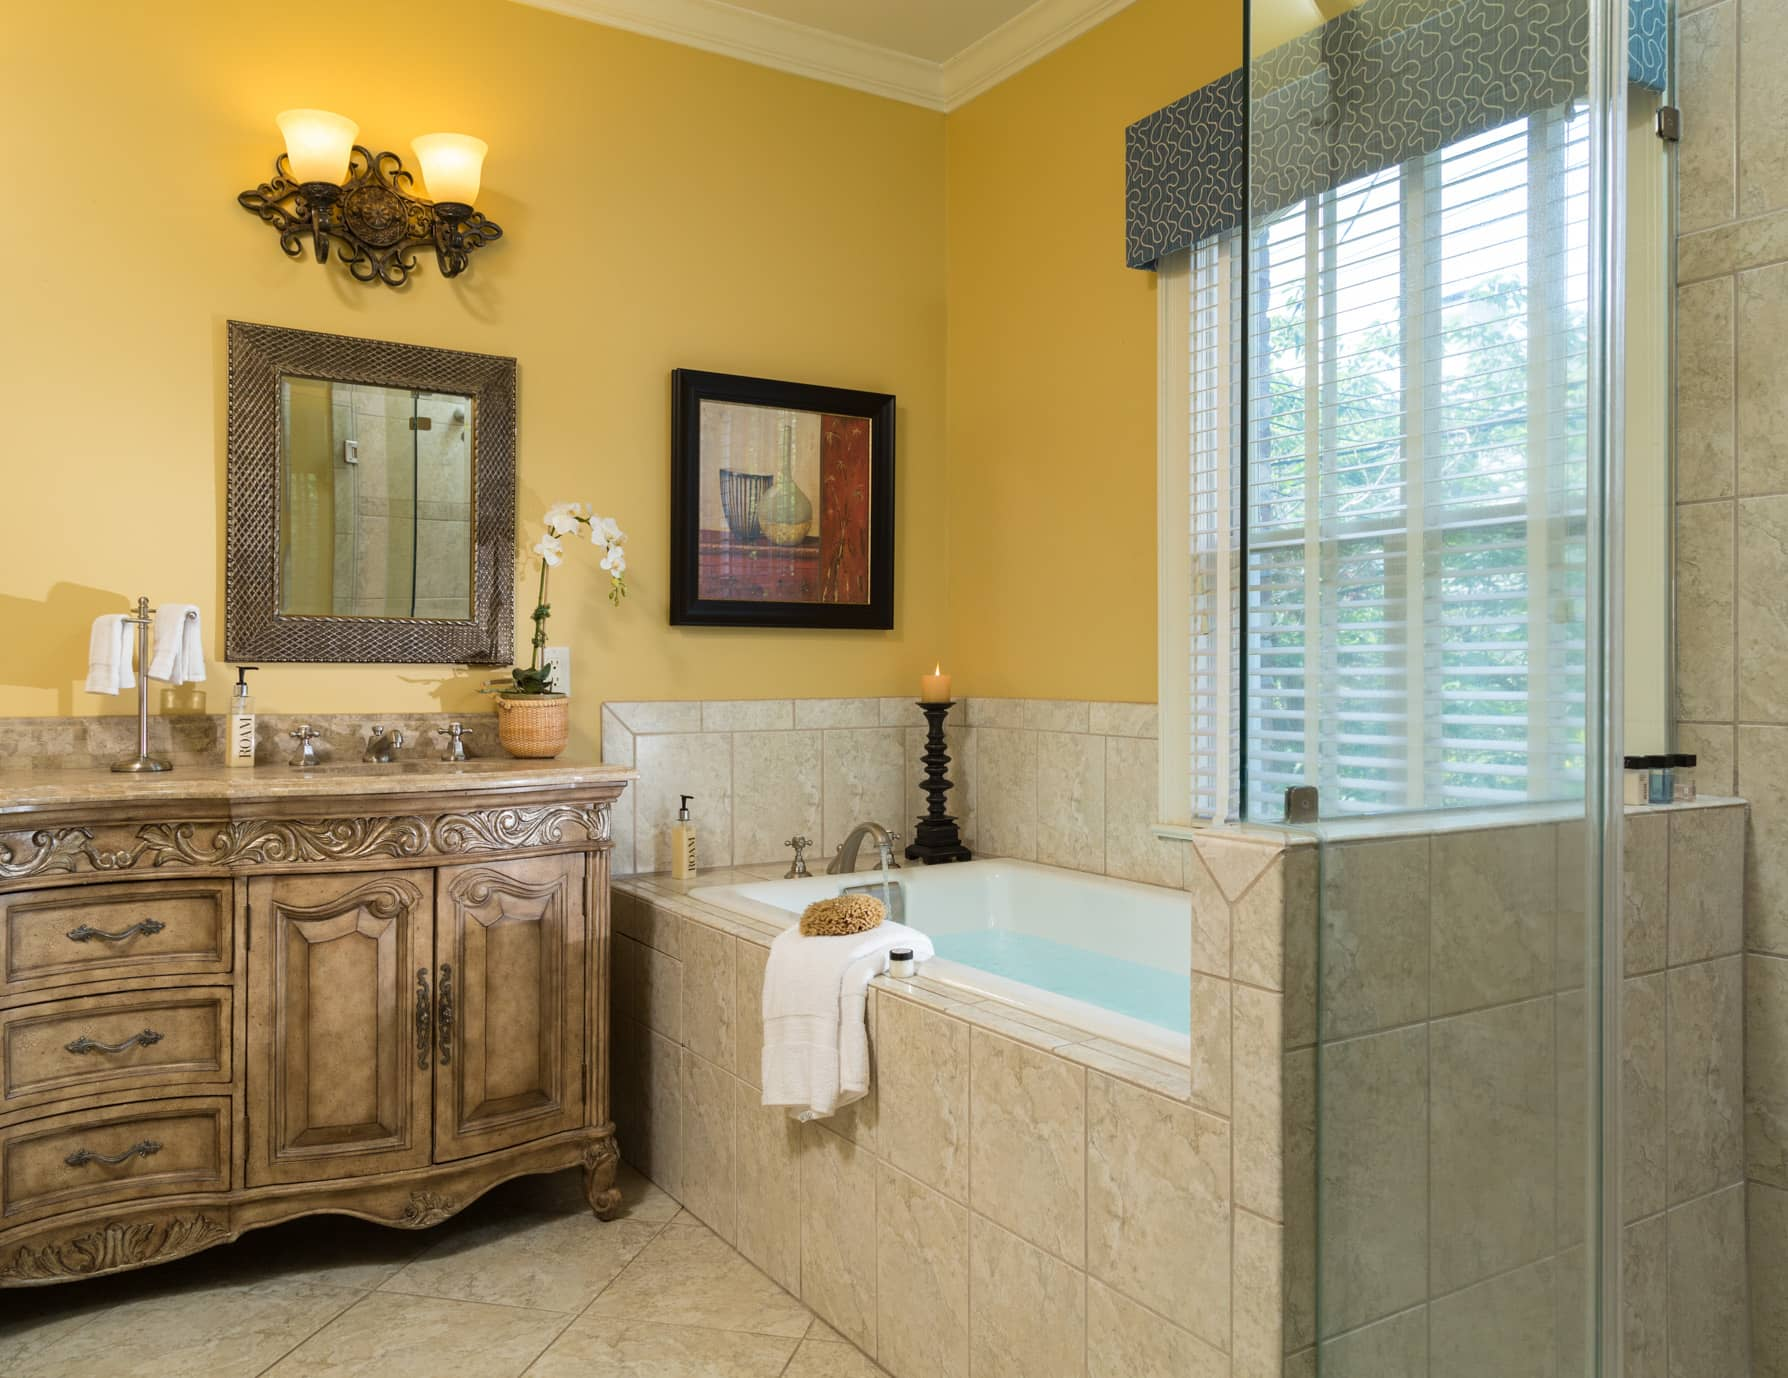 A large soaking tub and separate glass walk-in shower in a spacious bathroom